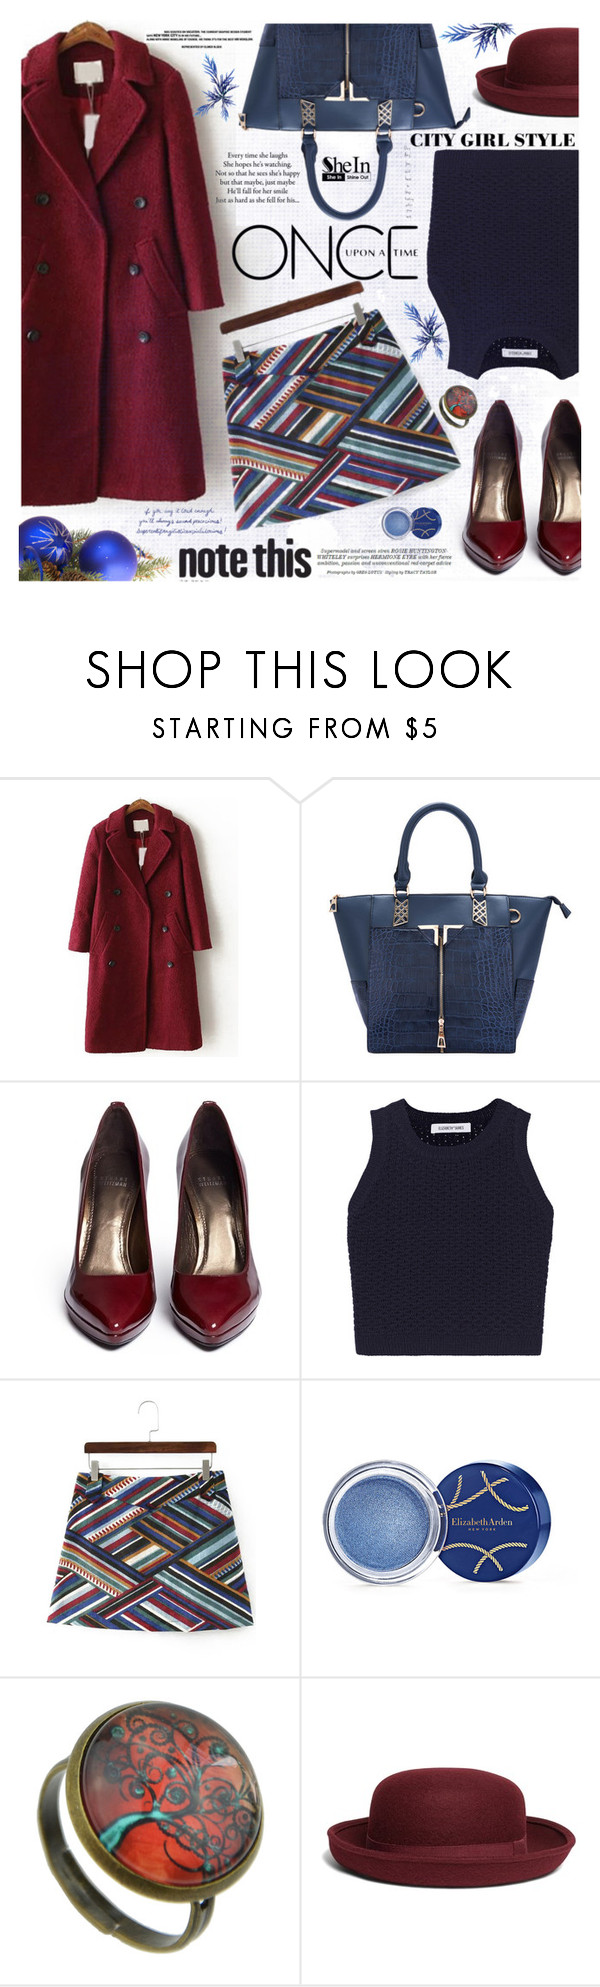 """City girl style"" by katjuncica ❤ liked on Polyvore featuring Stuart Weitzman, Elizabeth and James, Elizabeth Arden, Brooks Brothers, Once Upon a Time and Whiteley"